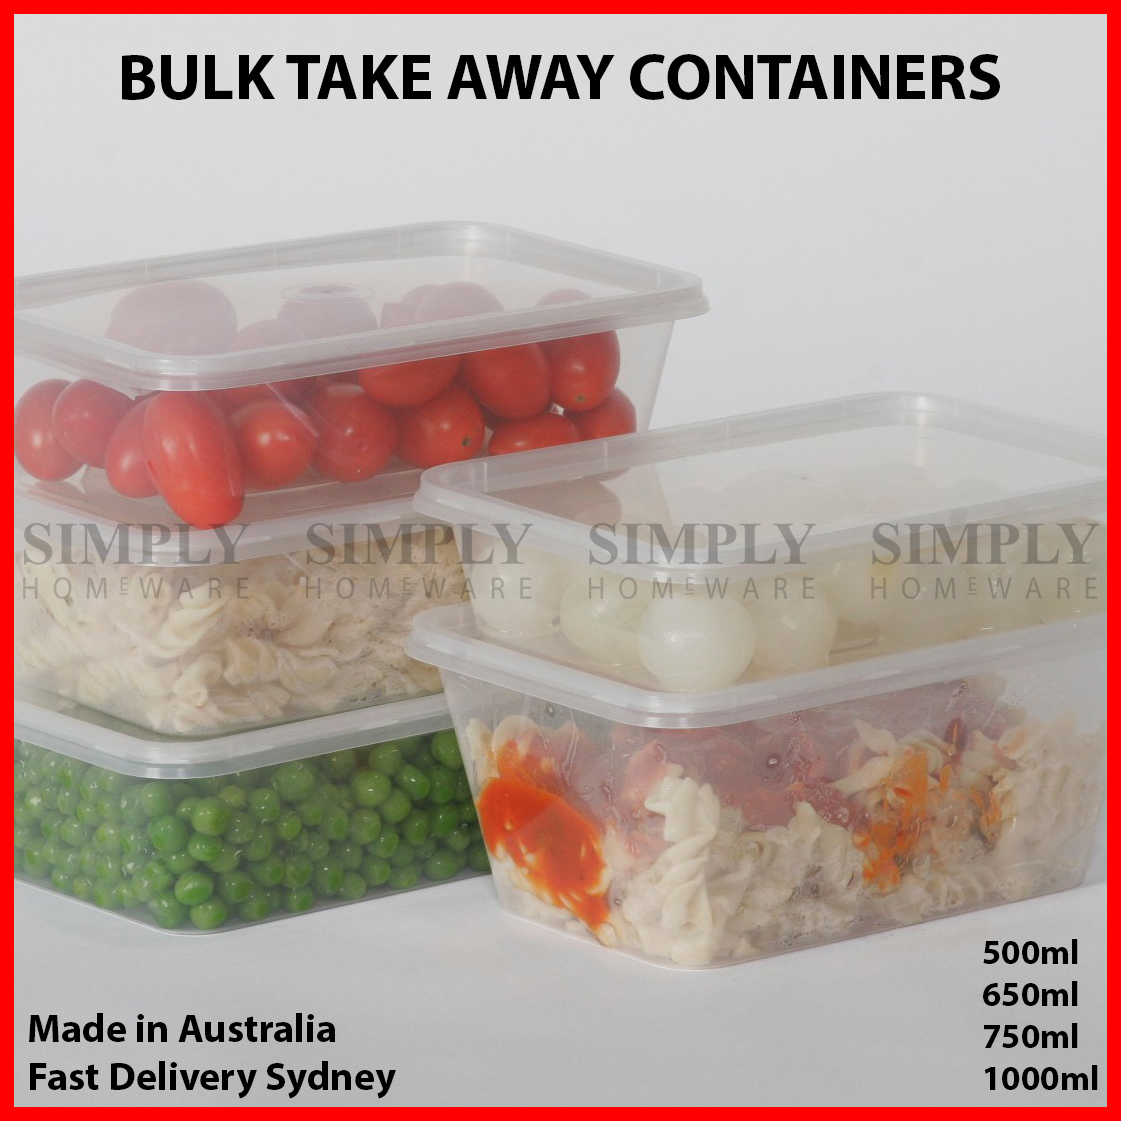 Storage Boxes Sydney Take Away Containers Takeaway Food Plastic Lids Bulk 500ml 650ml